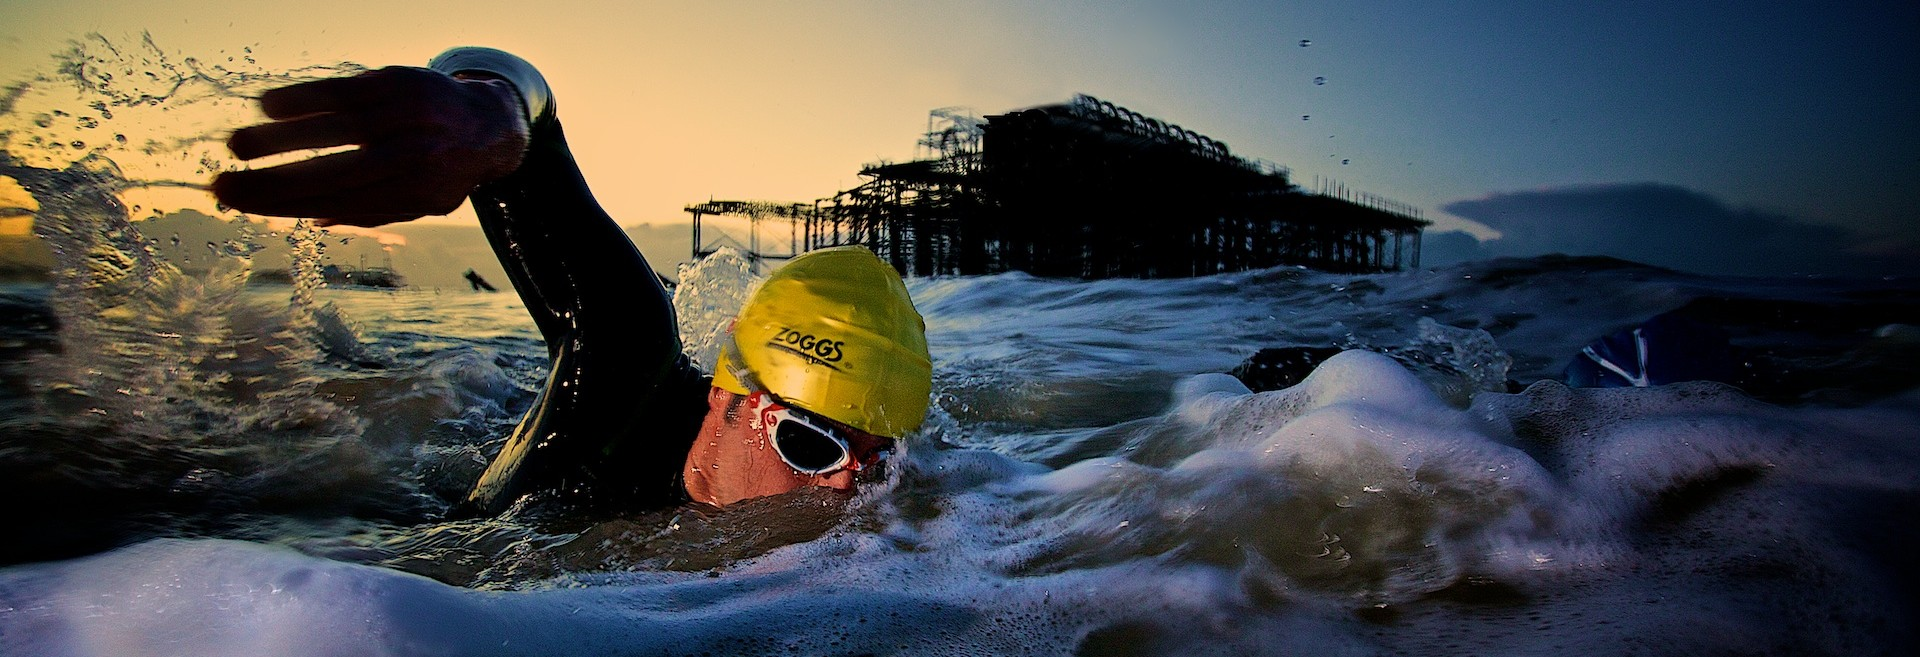 Ollie Armfield and team sea swimming, January 2012. Brighton, west pier